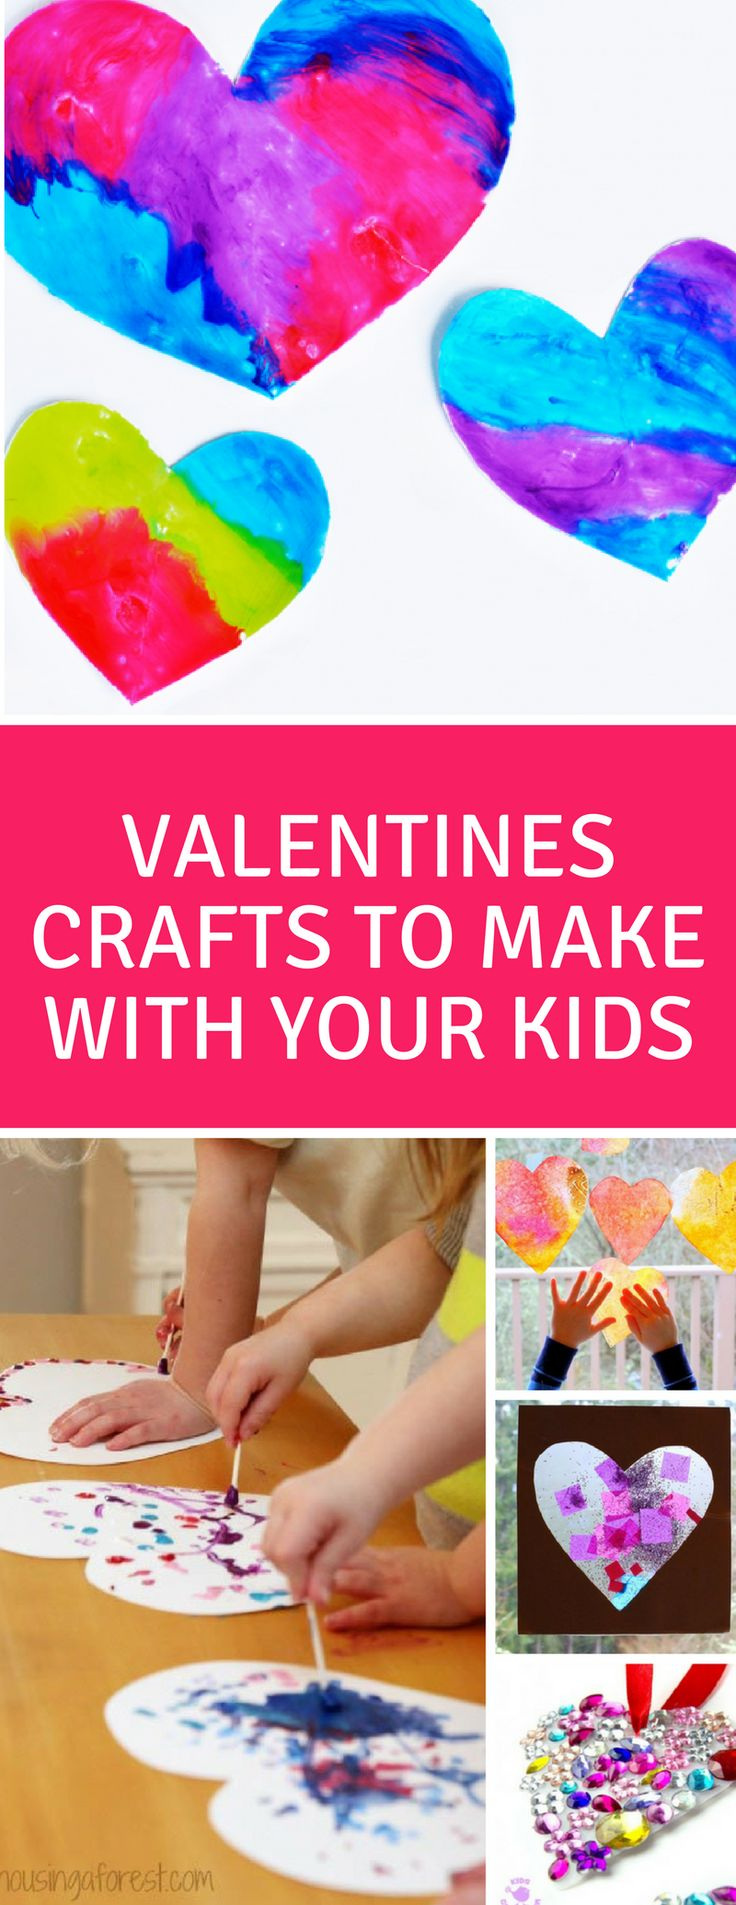 These Valentines Day crafts and activities for your toddlers and preschoolers are super cute and a lot of fun! #valentinesday #kids #kidcrafts